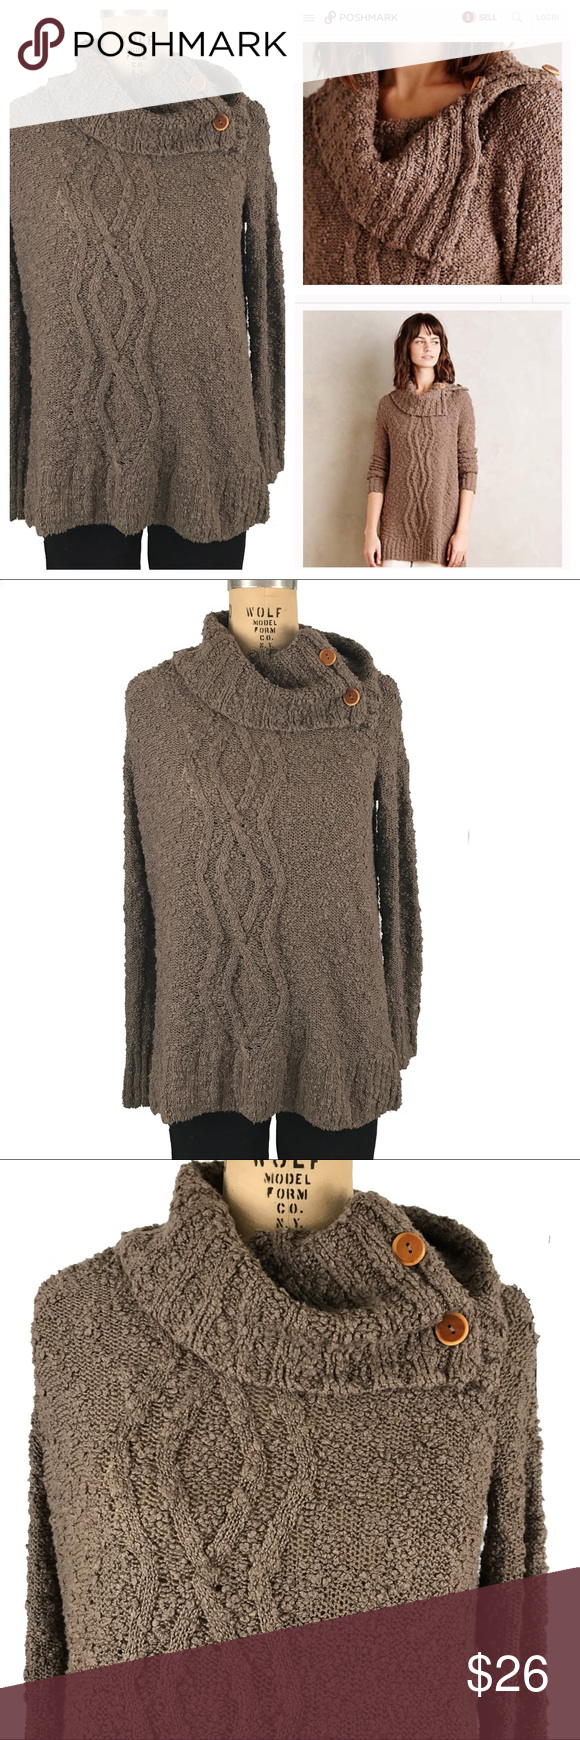 Moth oversized cowl neck sweater button neck brown | Cowl neck ...